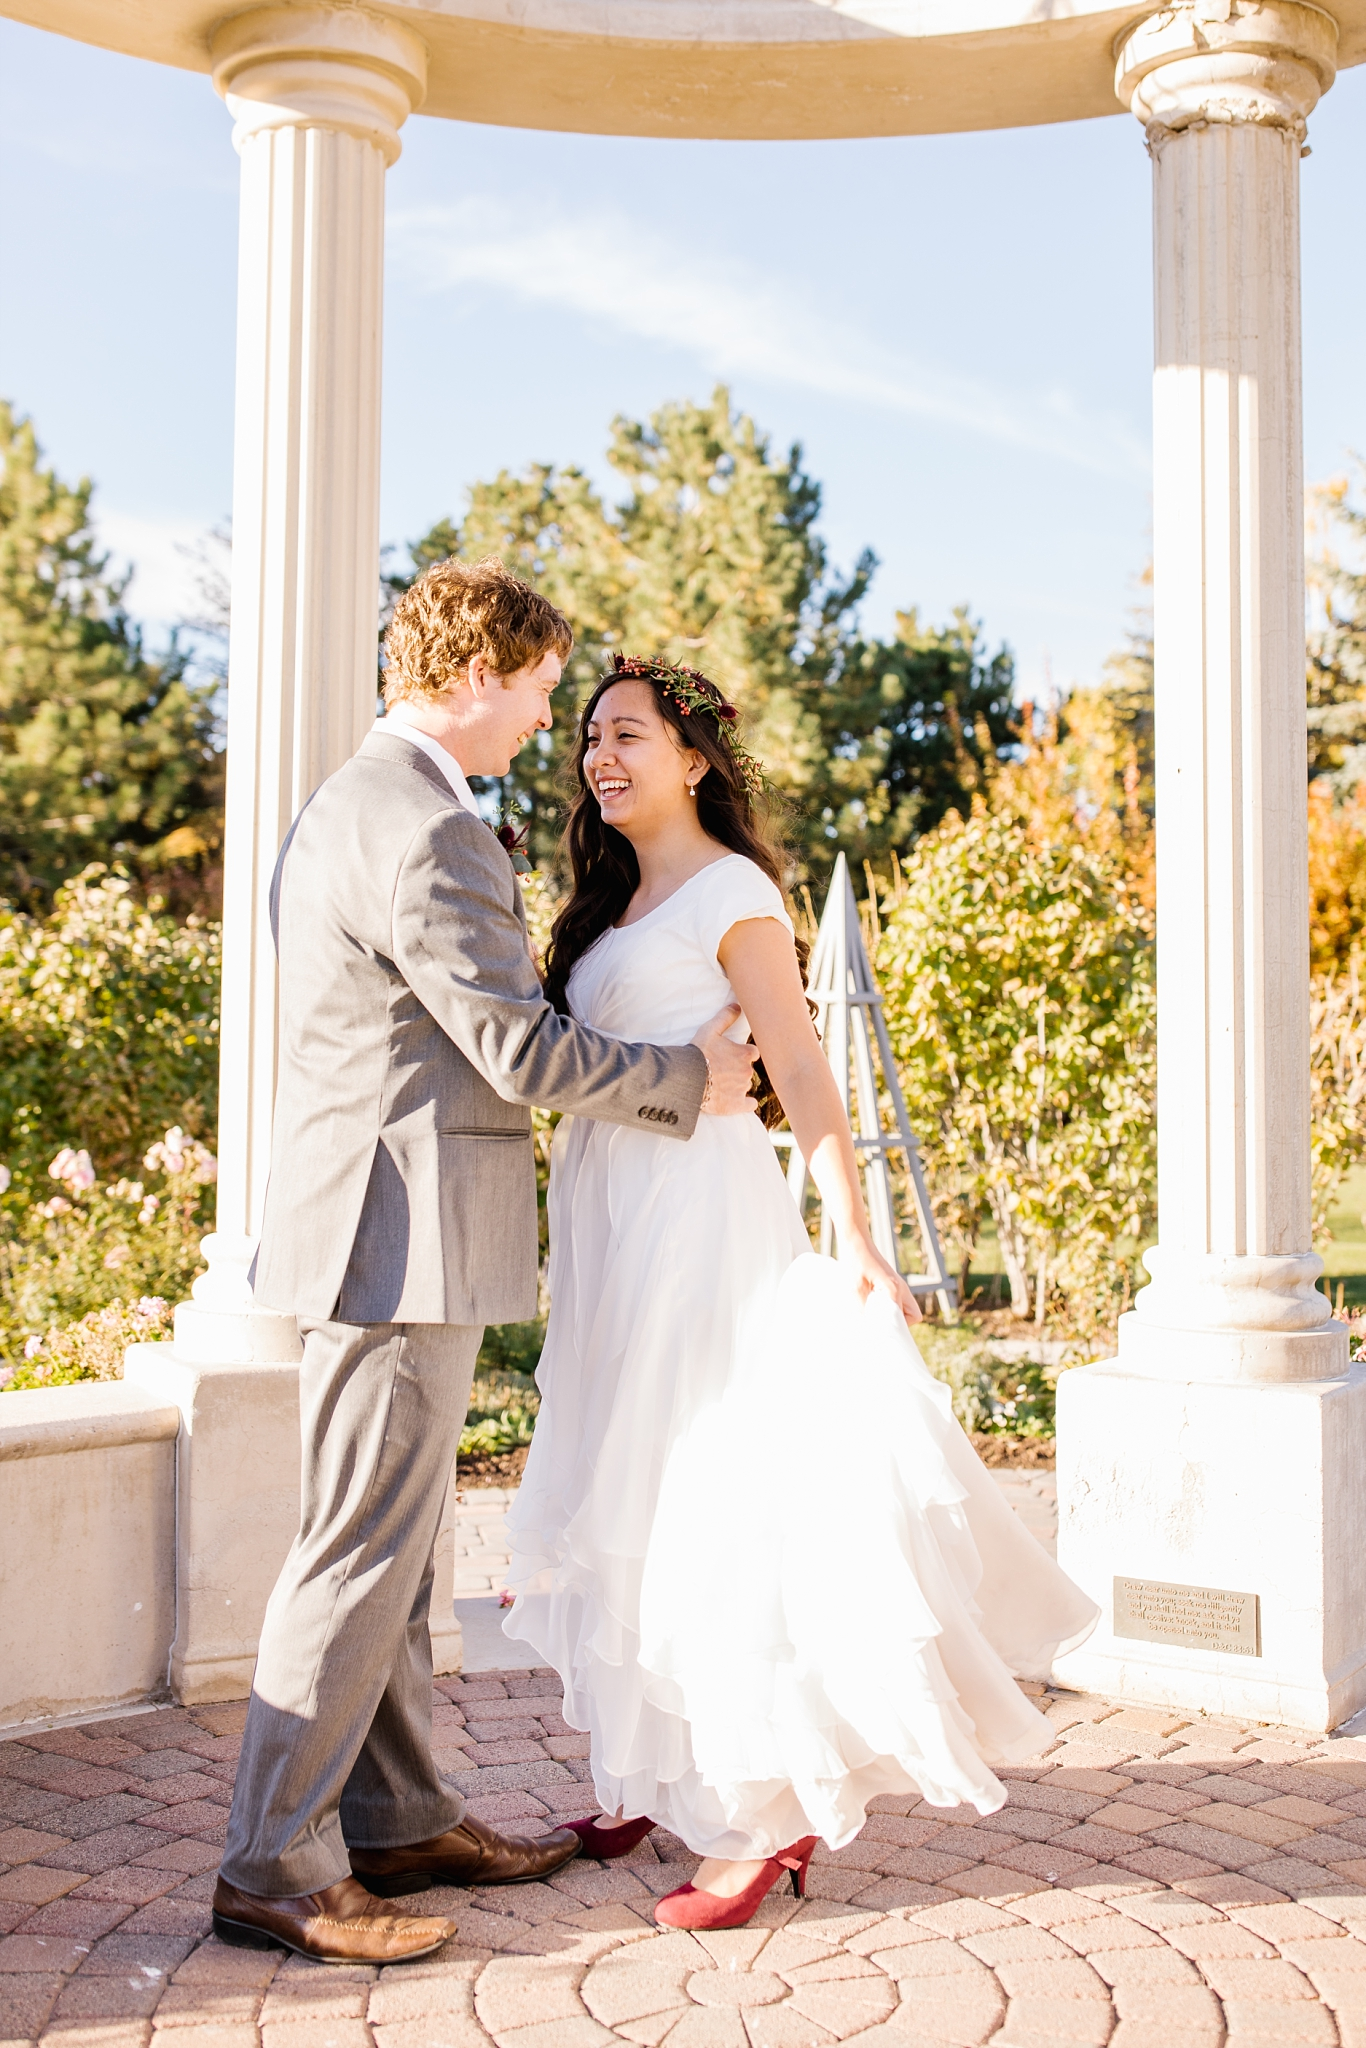 JB-Bridals-64_Lizzie-B-Imagery-Utah-Wedding-Photographer-Thanksgiving-Point-Ashton-Gardens-Lehi-Utah.jpg